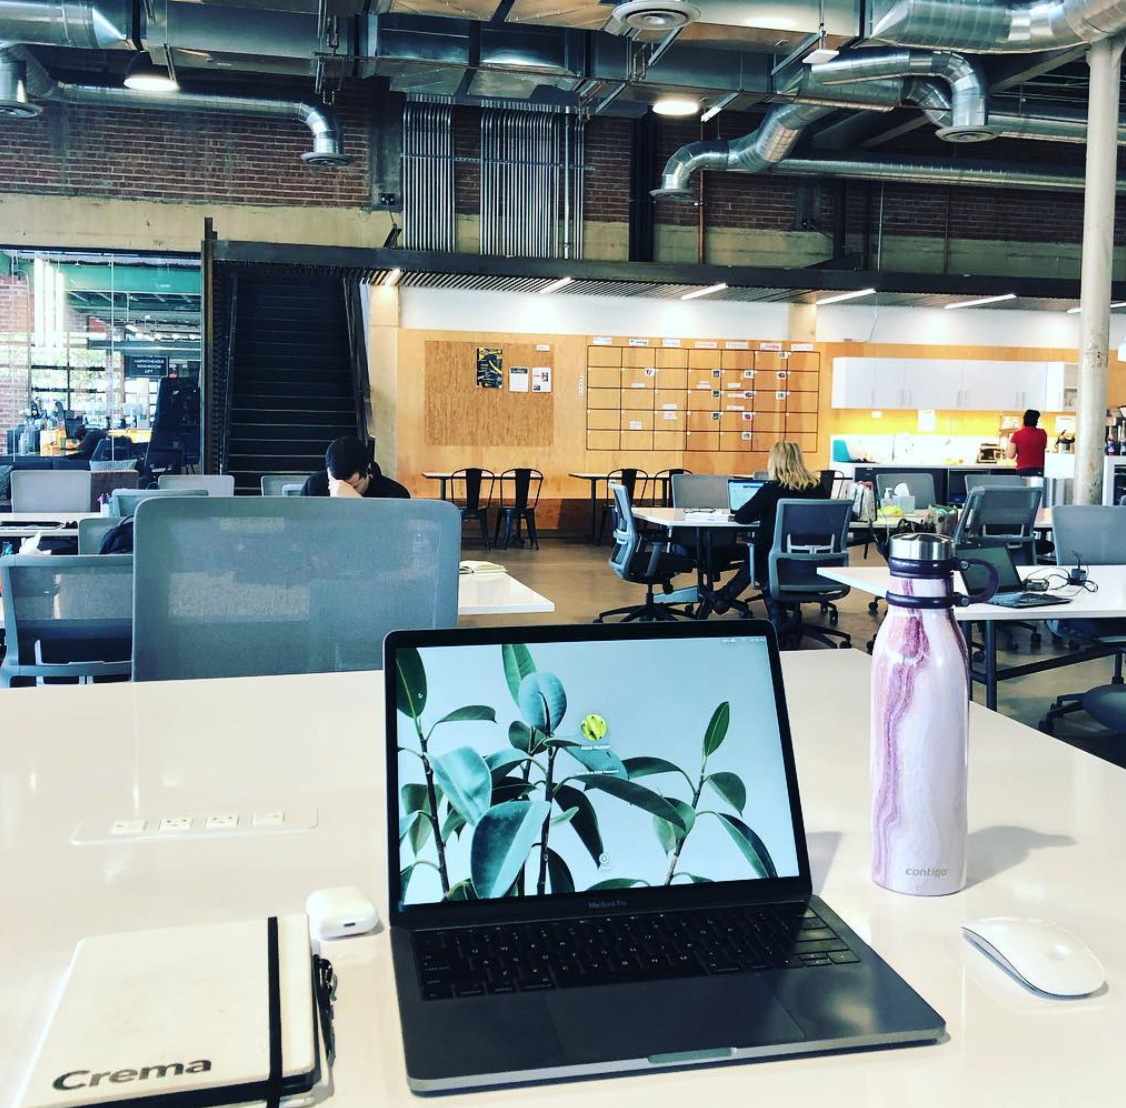 picture of alexa desk at working space with water bottle and computer